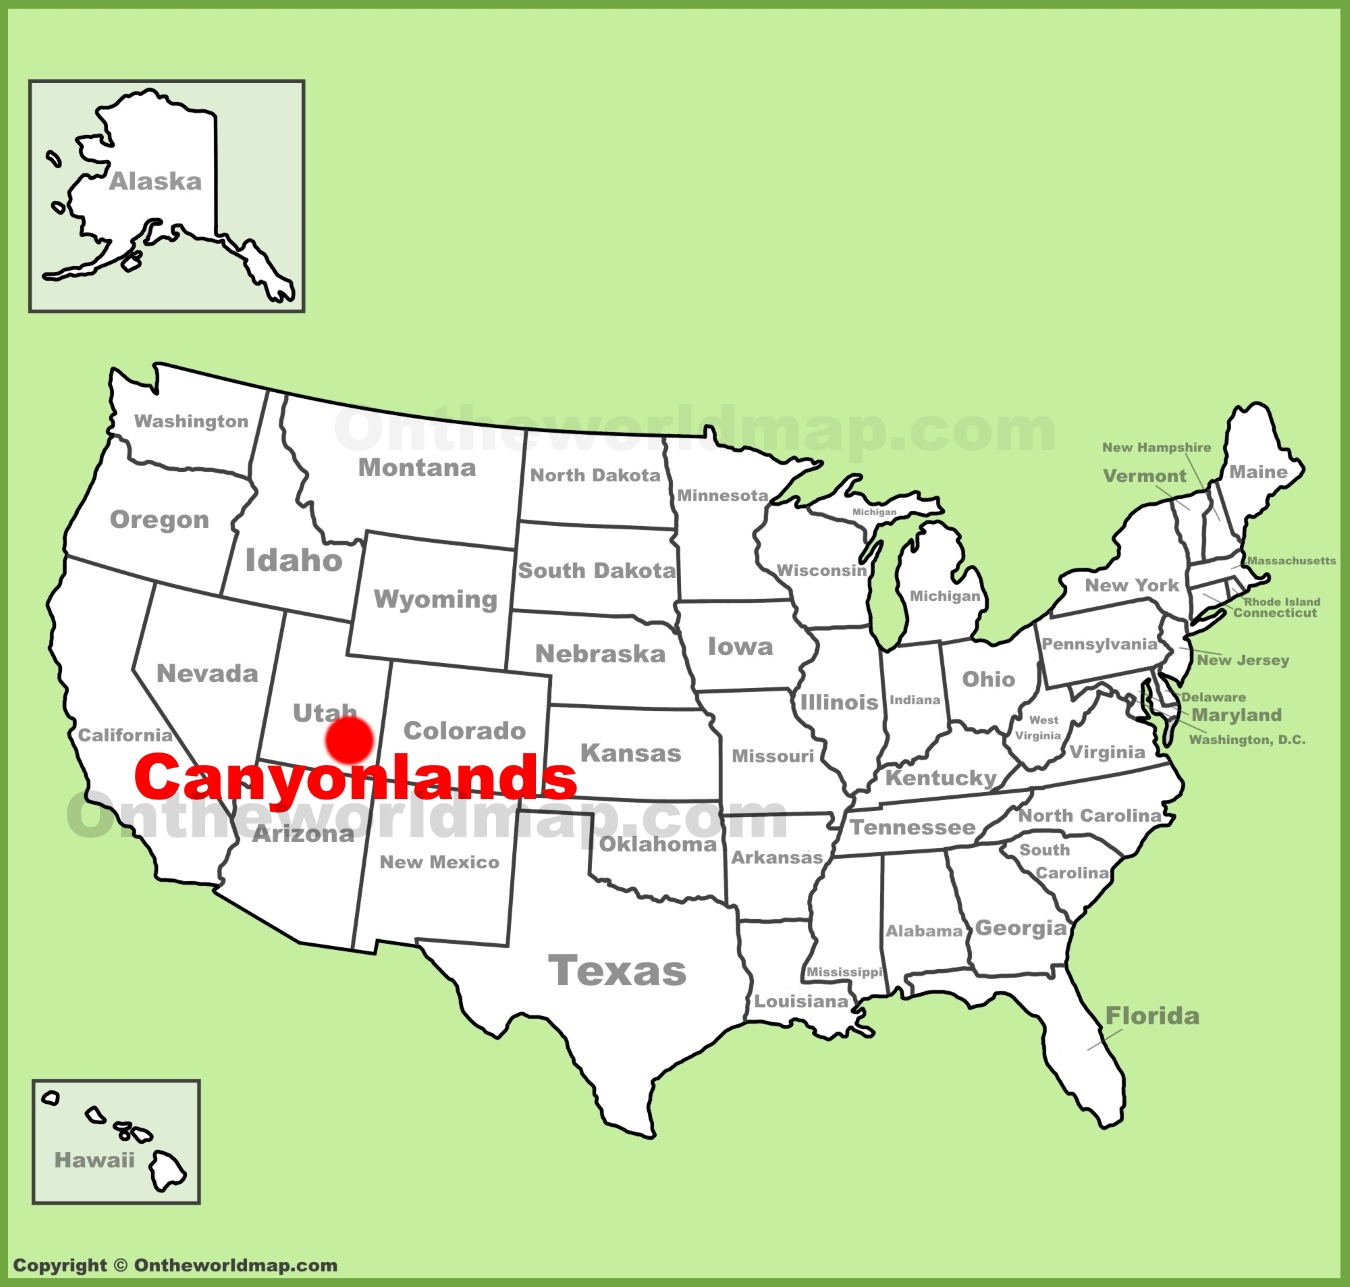 Canyonlands National Park location on the U.S. Map